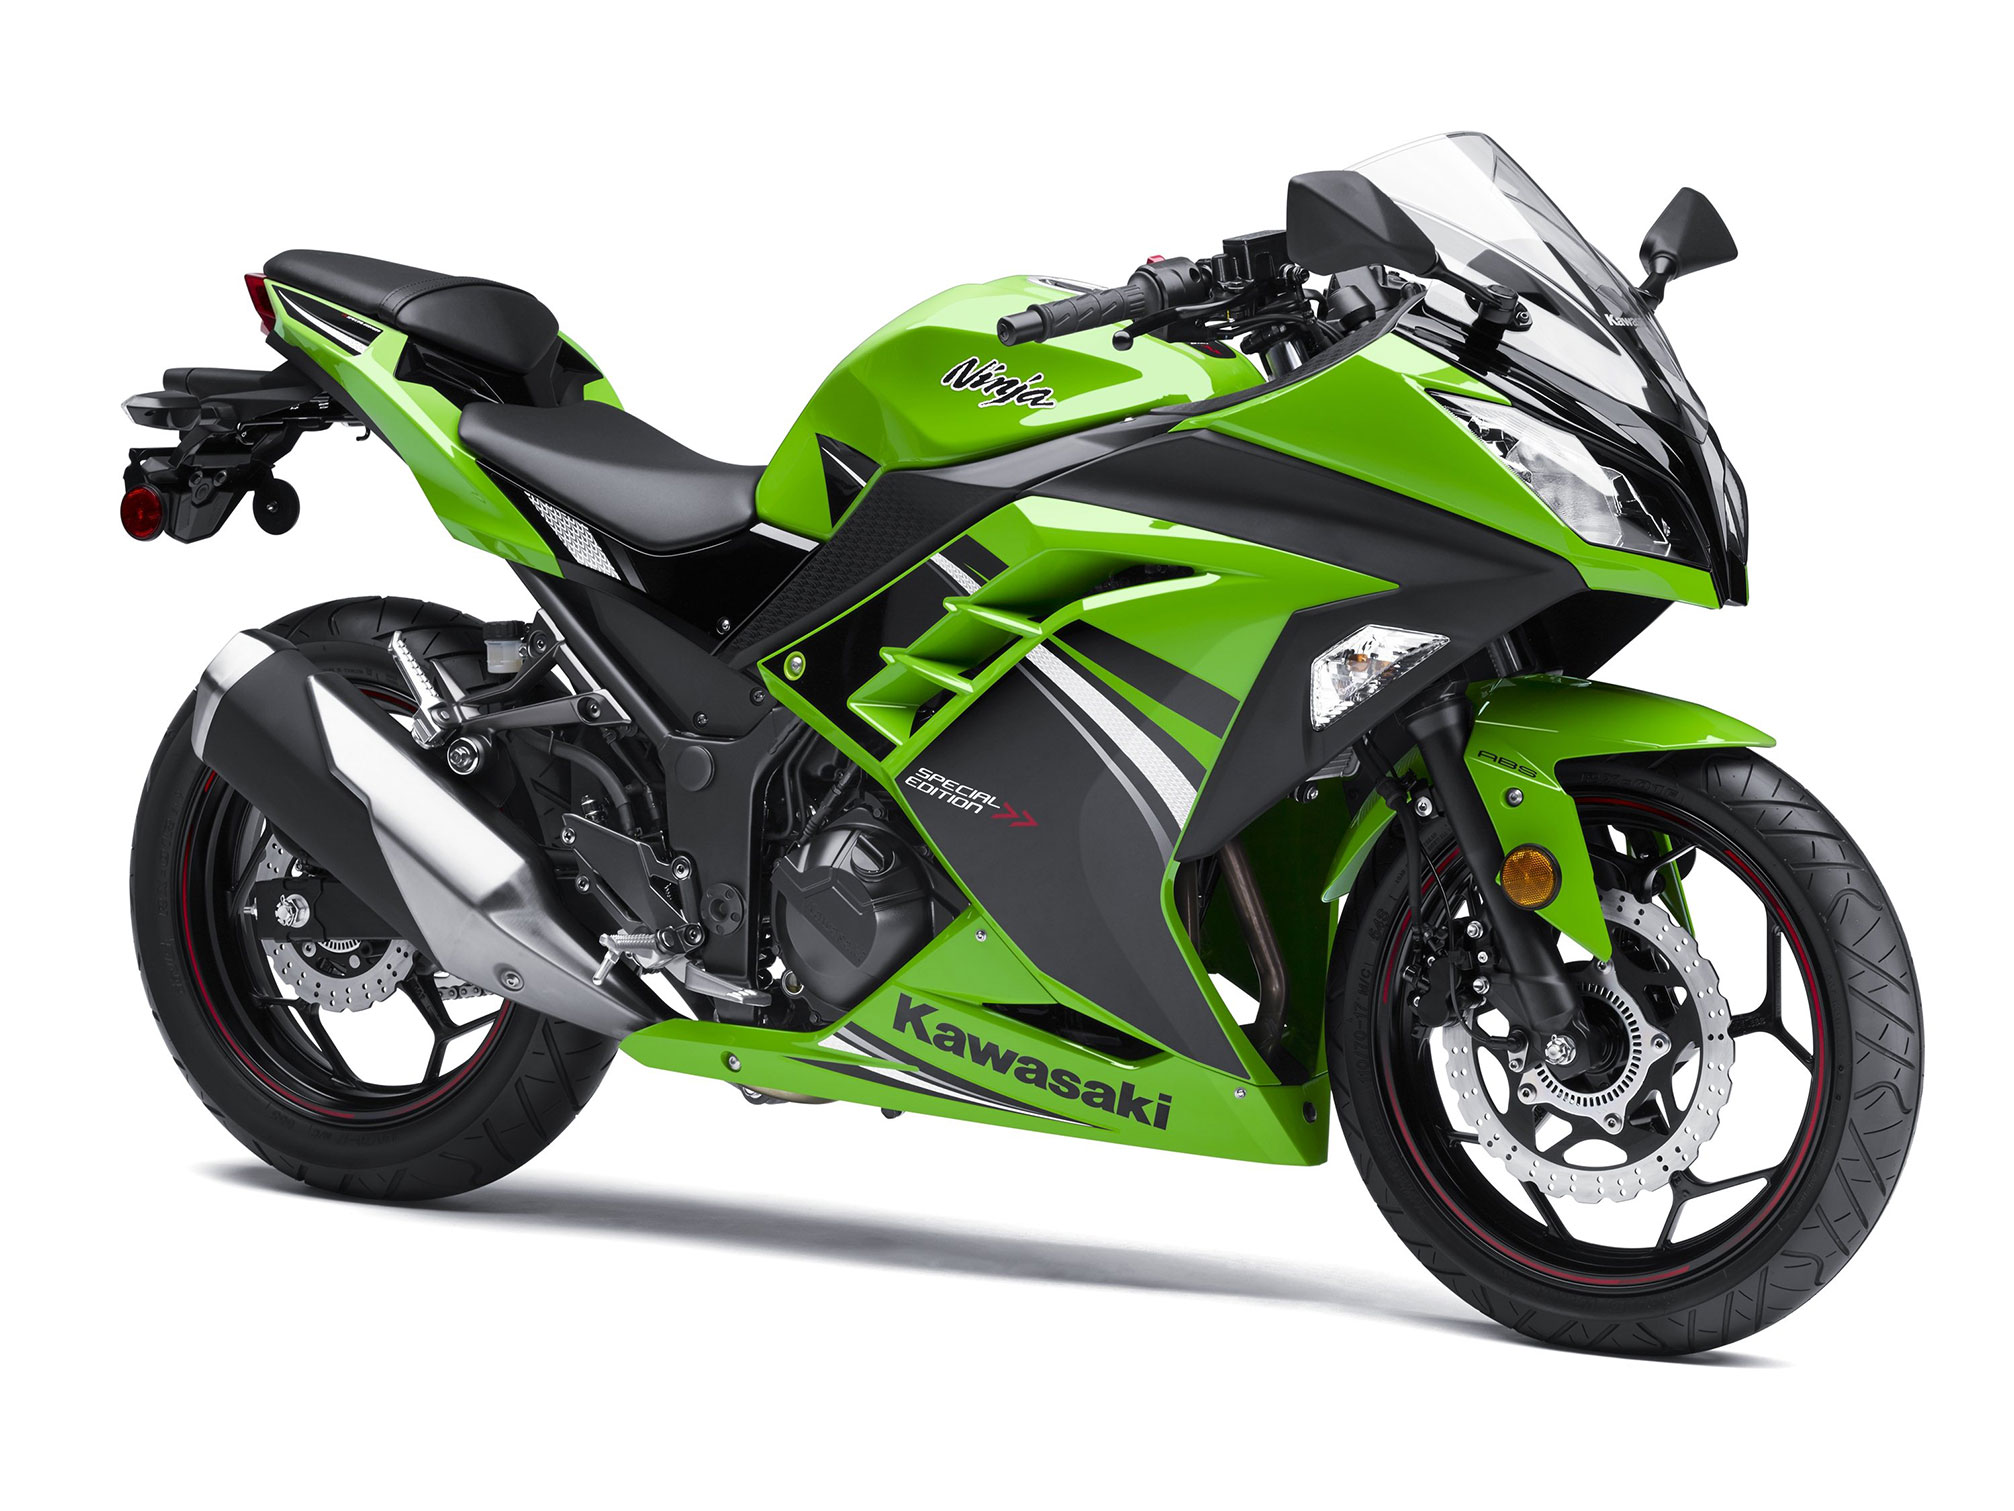 2014 Kawasaki Ninja 300 SE ABS Review